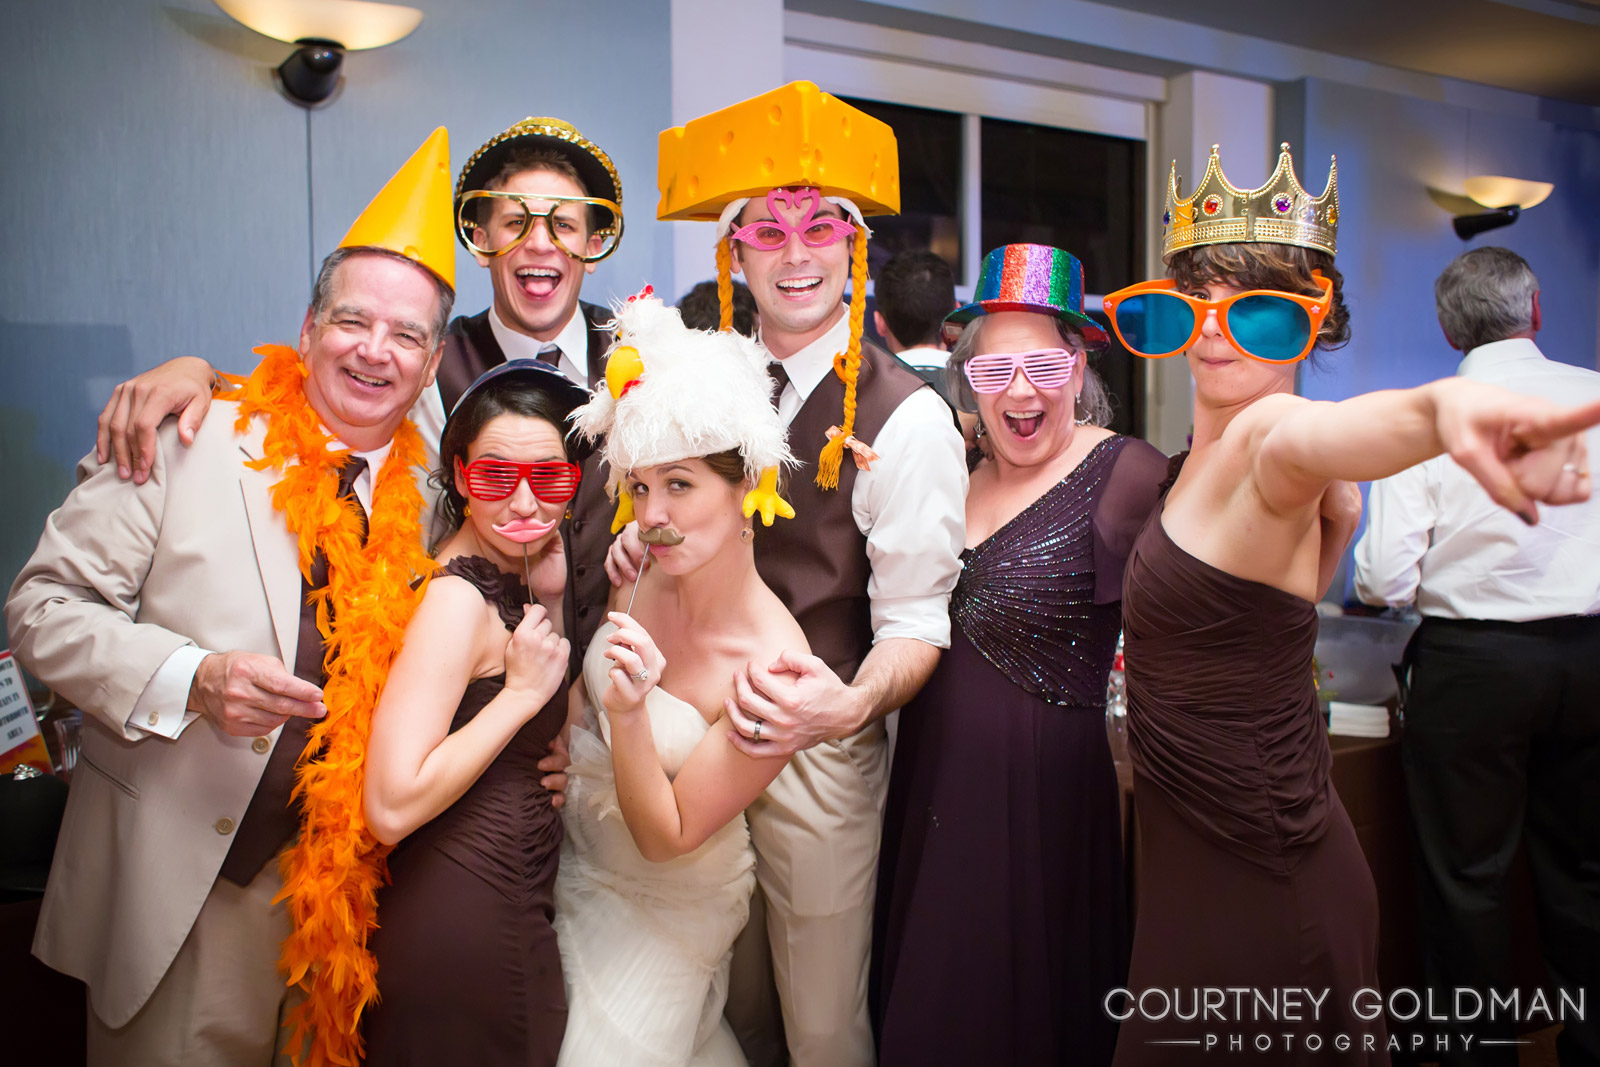 Atlanta-Wedding-Photography-by-Courtney-Goldman-57.jpg